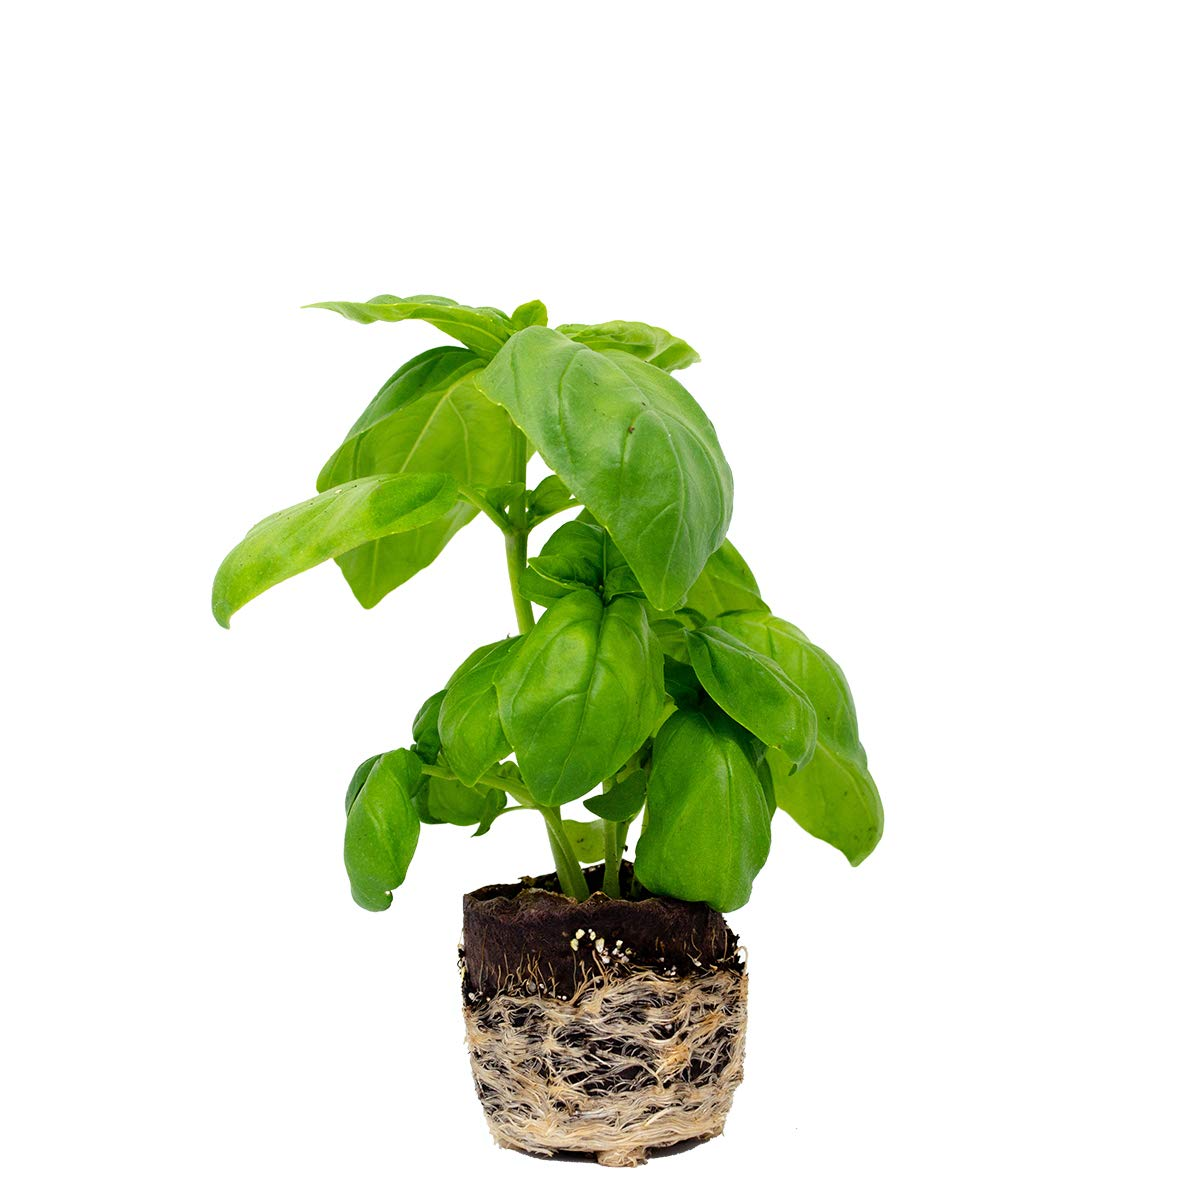 Basil Plants (12) by Plantables (Image #1)